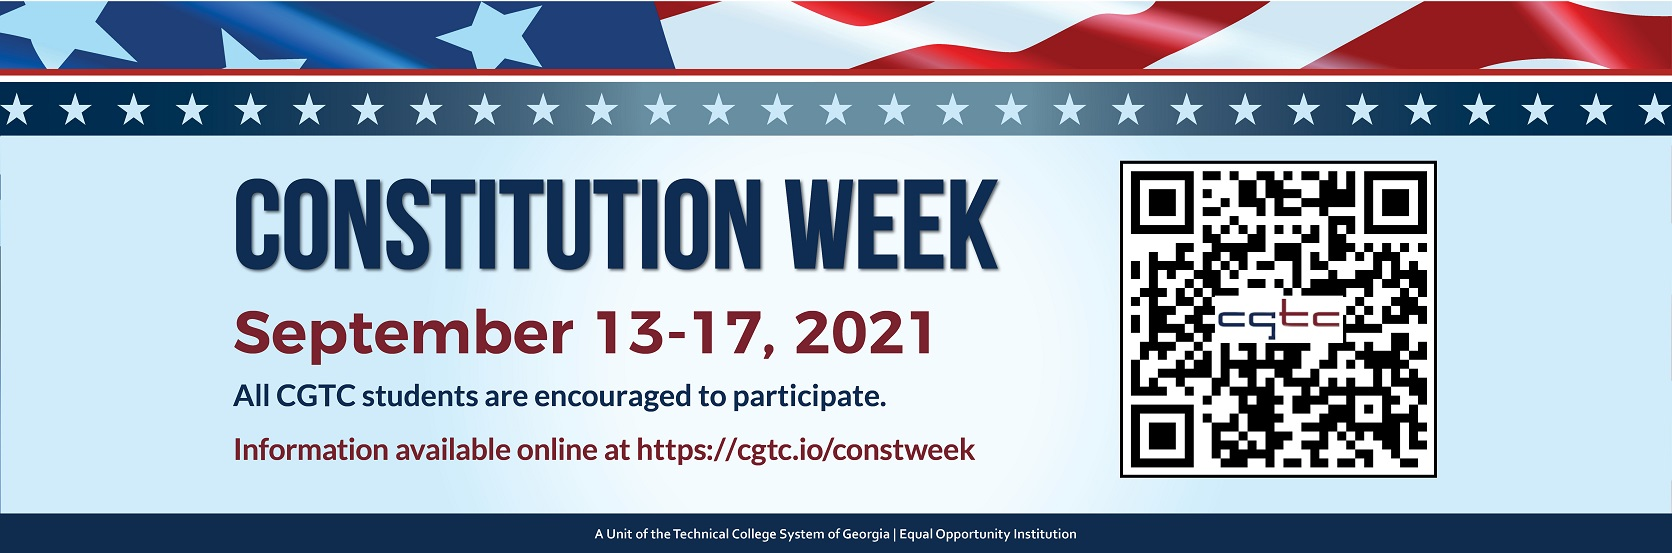 CLICK HERE to participate in Library Services Constitution Week Challenge.